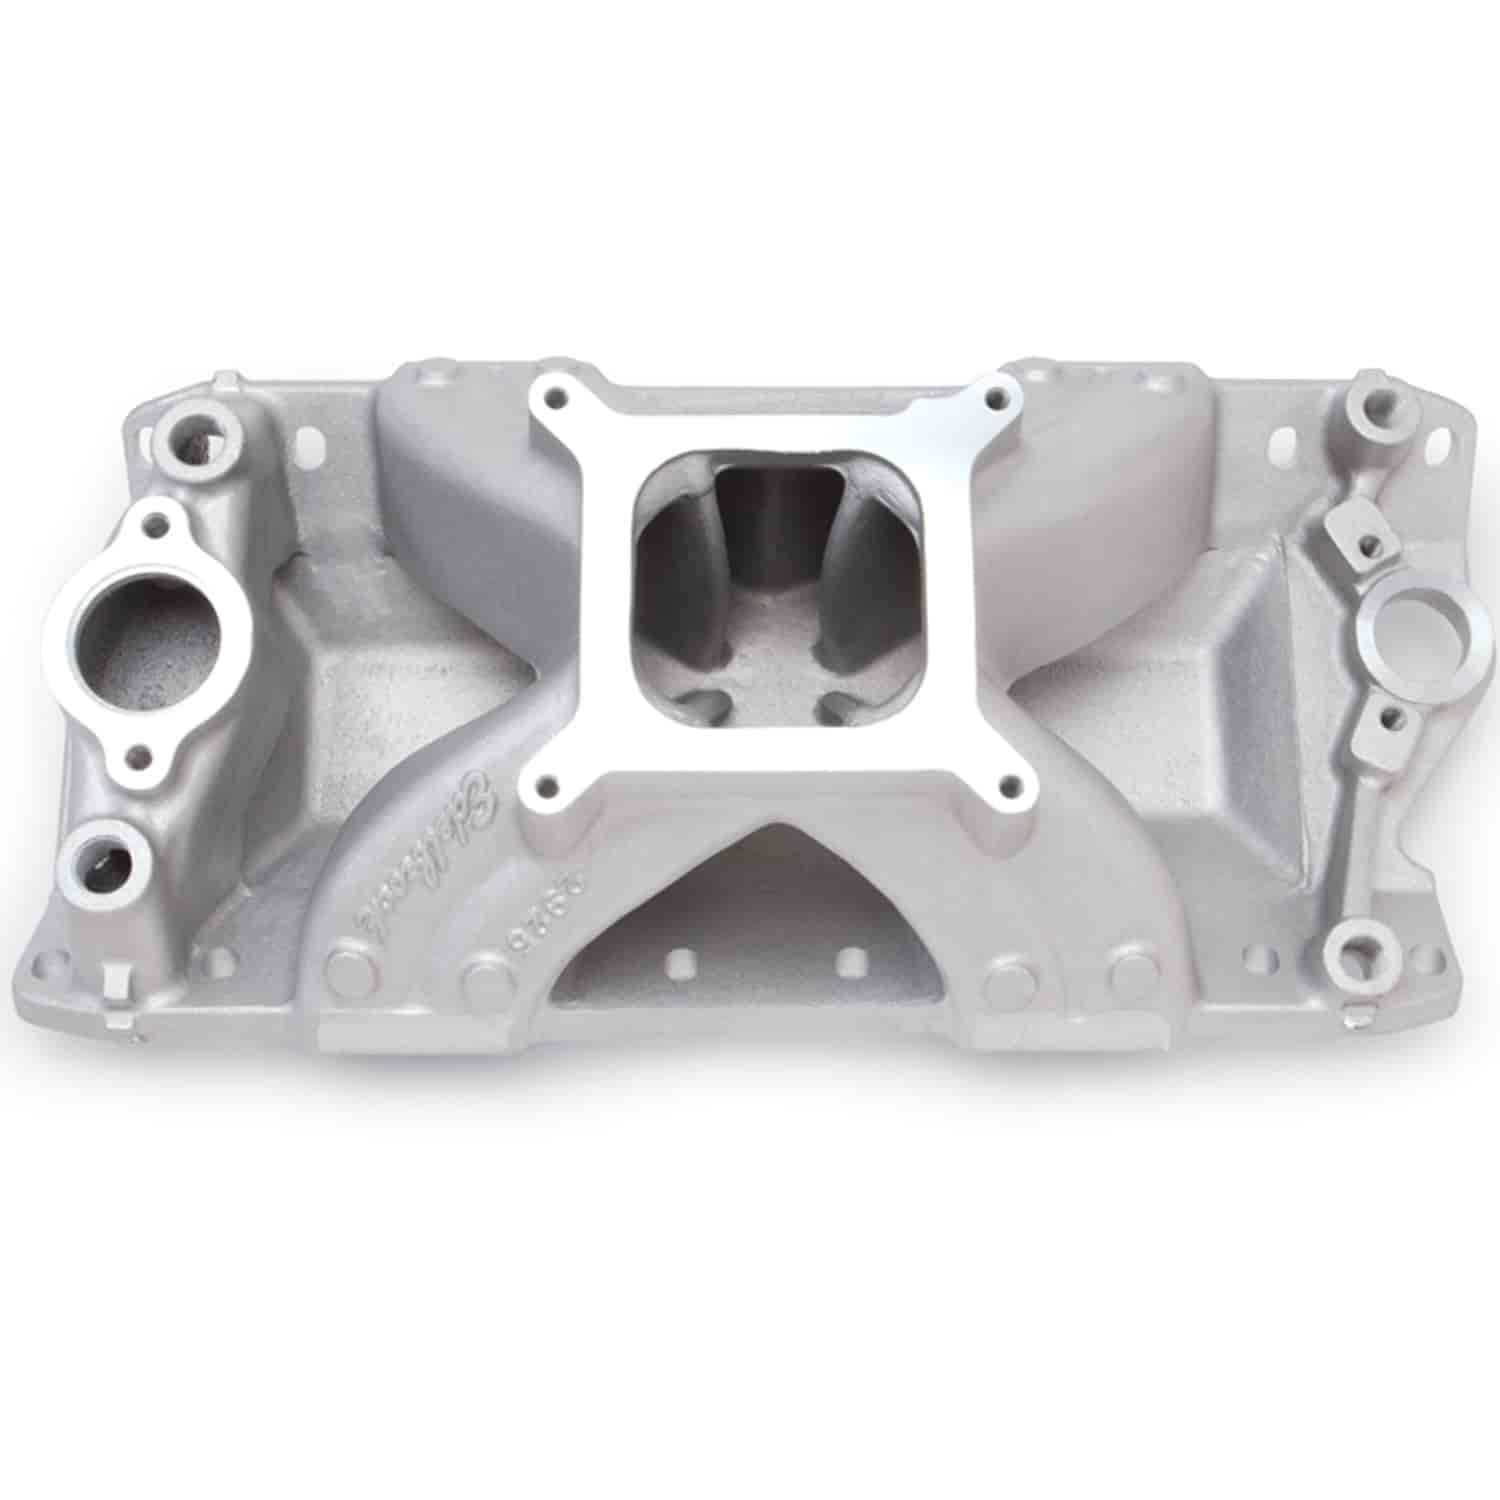 Edelbrock Super Victor Intake Manifold for Small Block Chevy